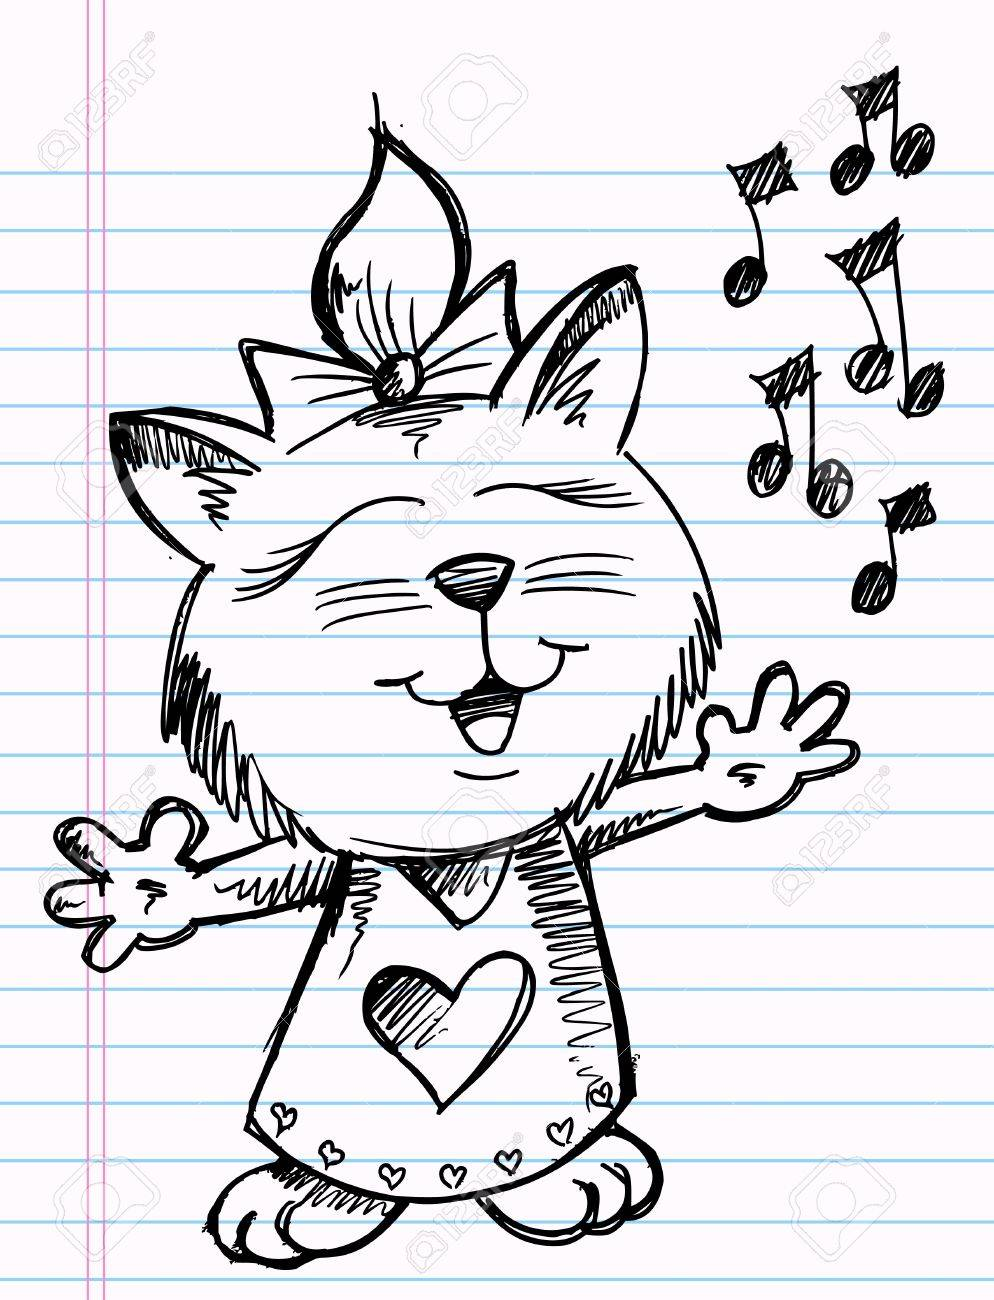 Sketchy doodle Singer Music Cat Vector Illustration Stock Vector - 10104515